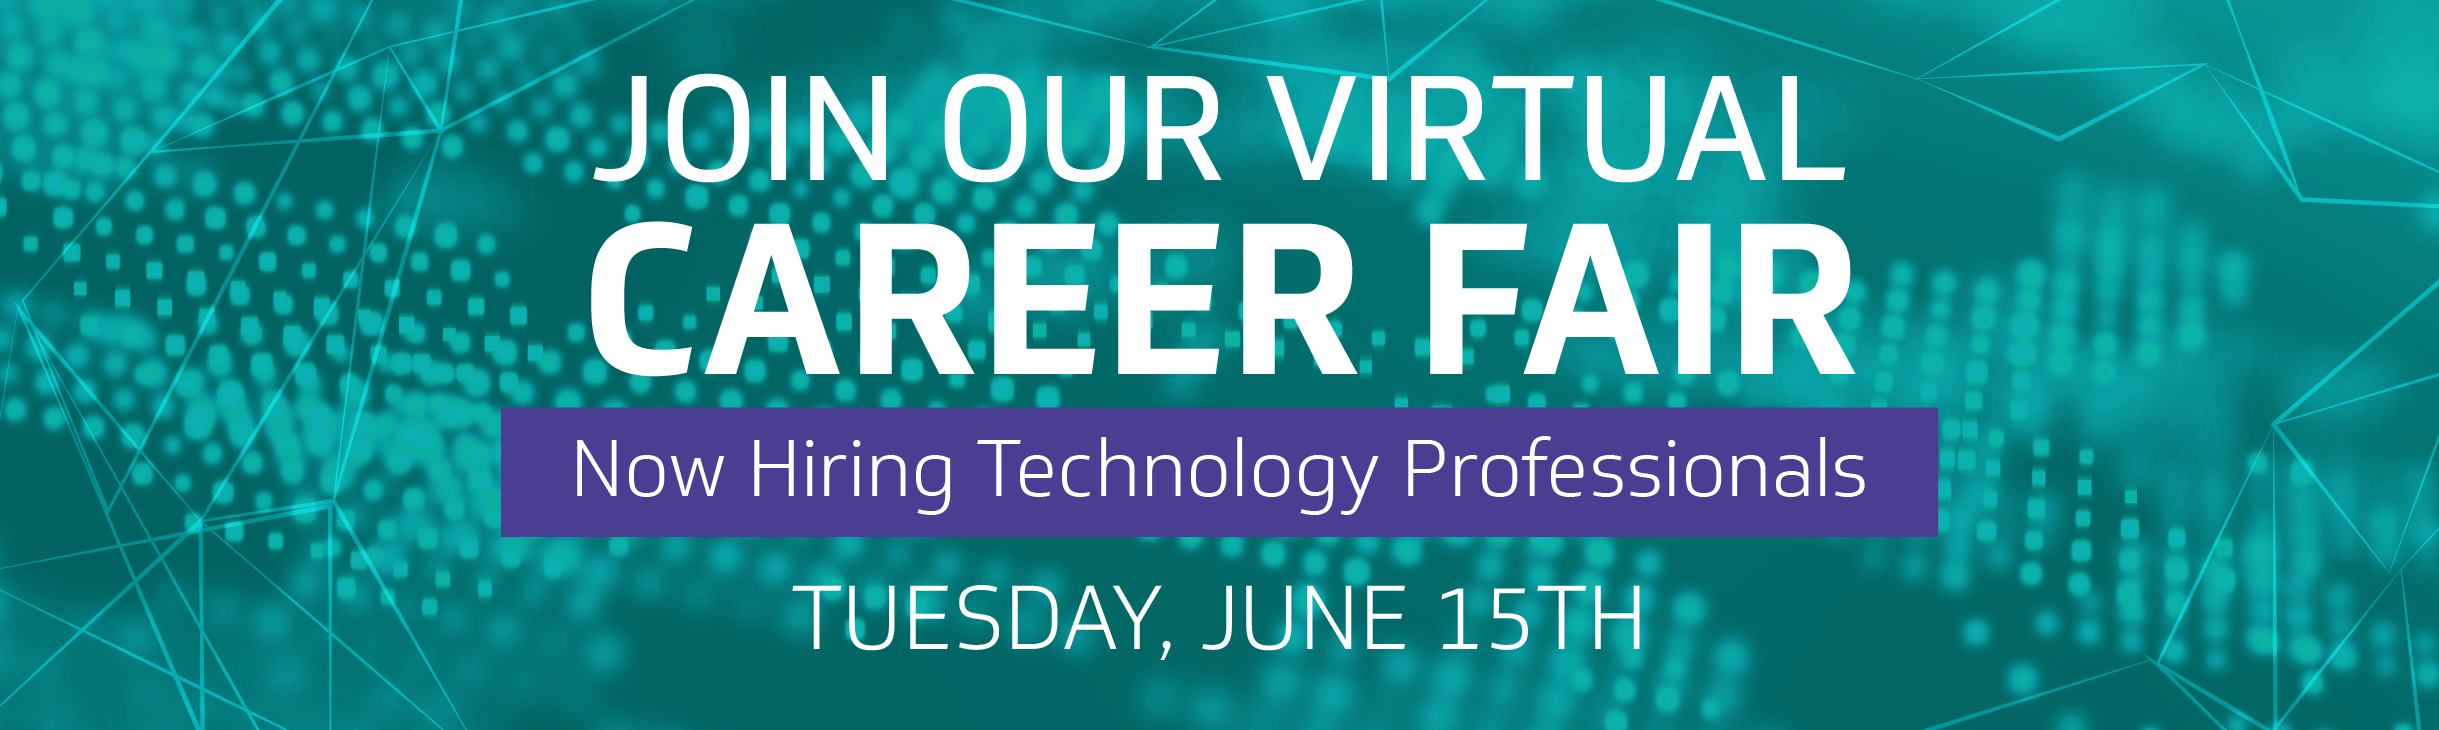 Join Our Virtual Career Fair for Technology Professionals